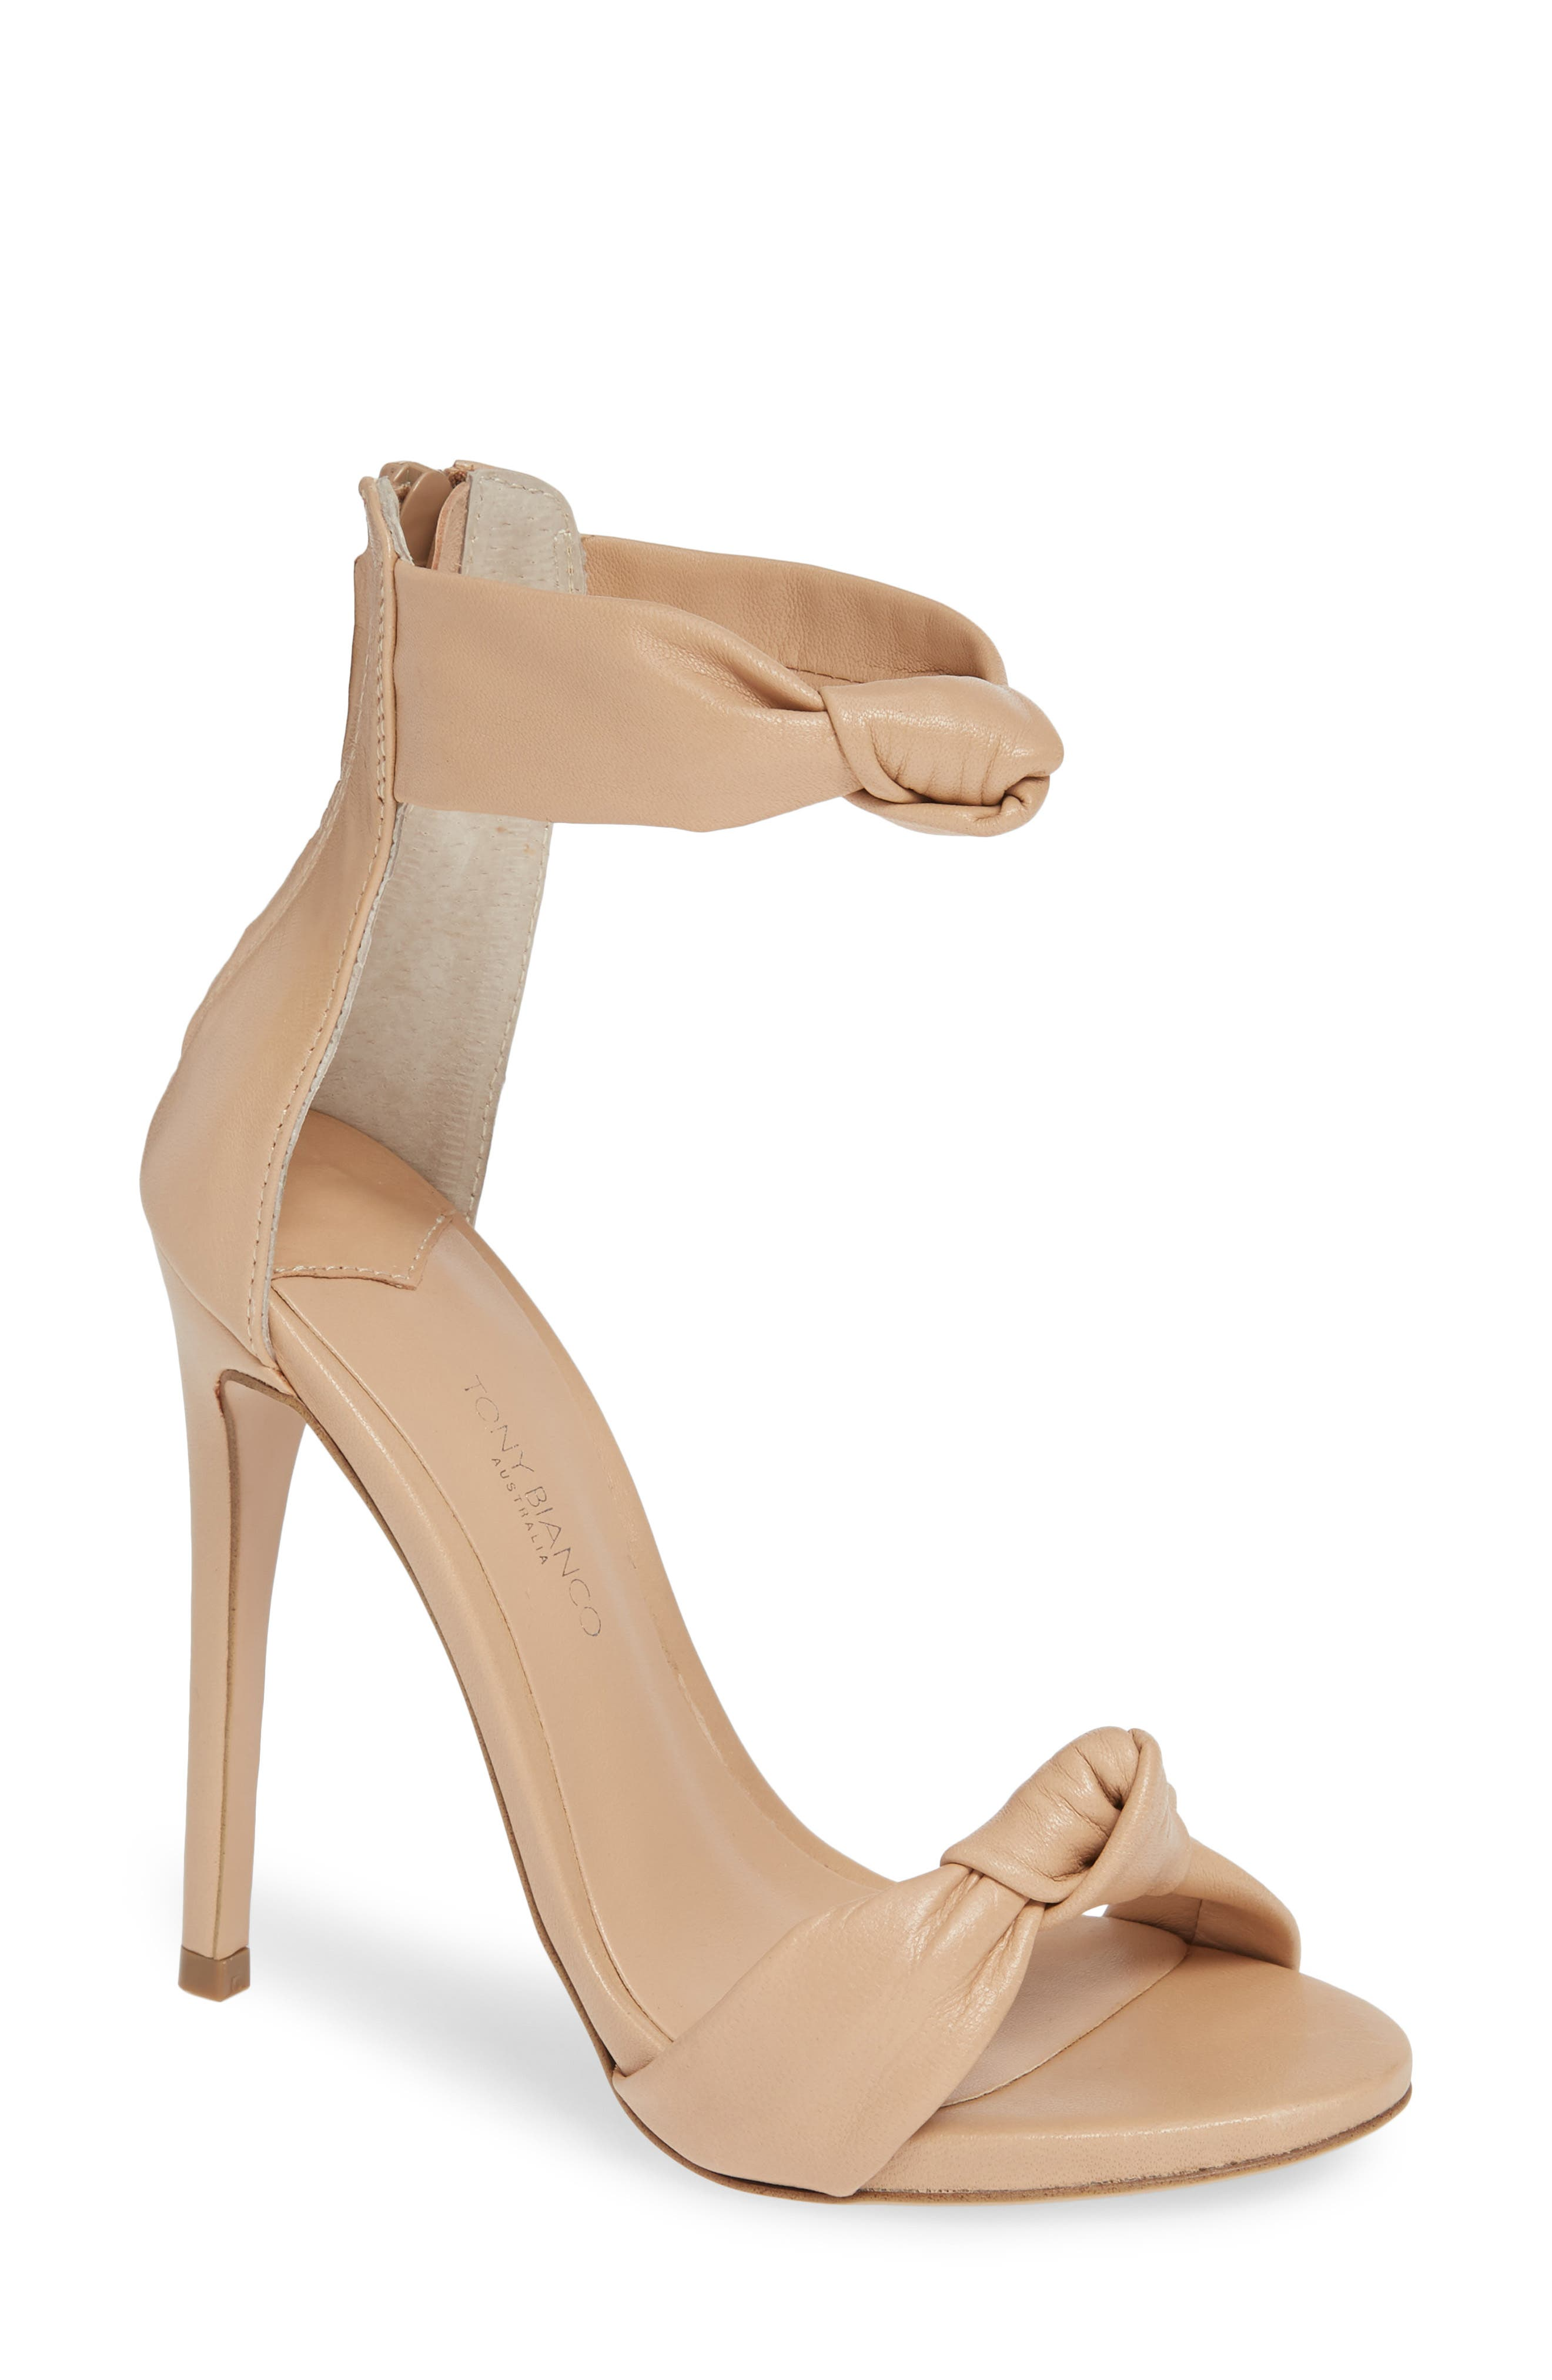 Anabelle Sandal,                             Main thumbnail 1, color,                             BEIGE LEATHER